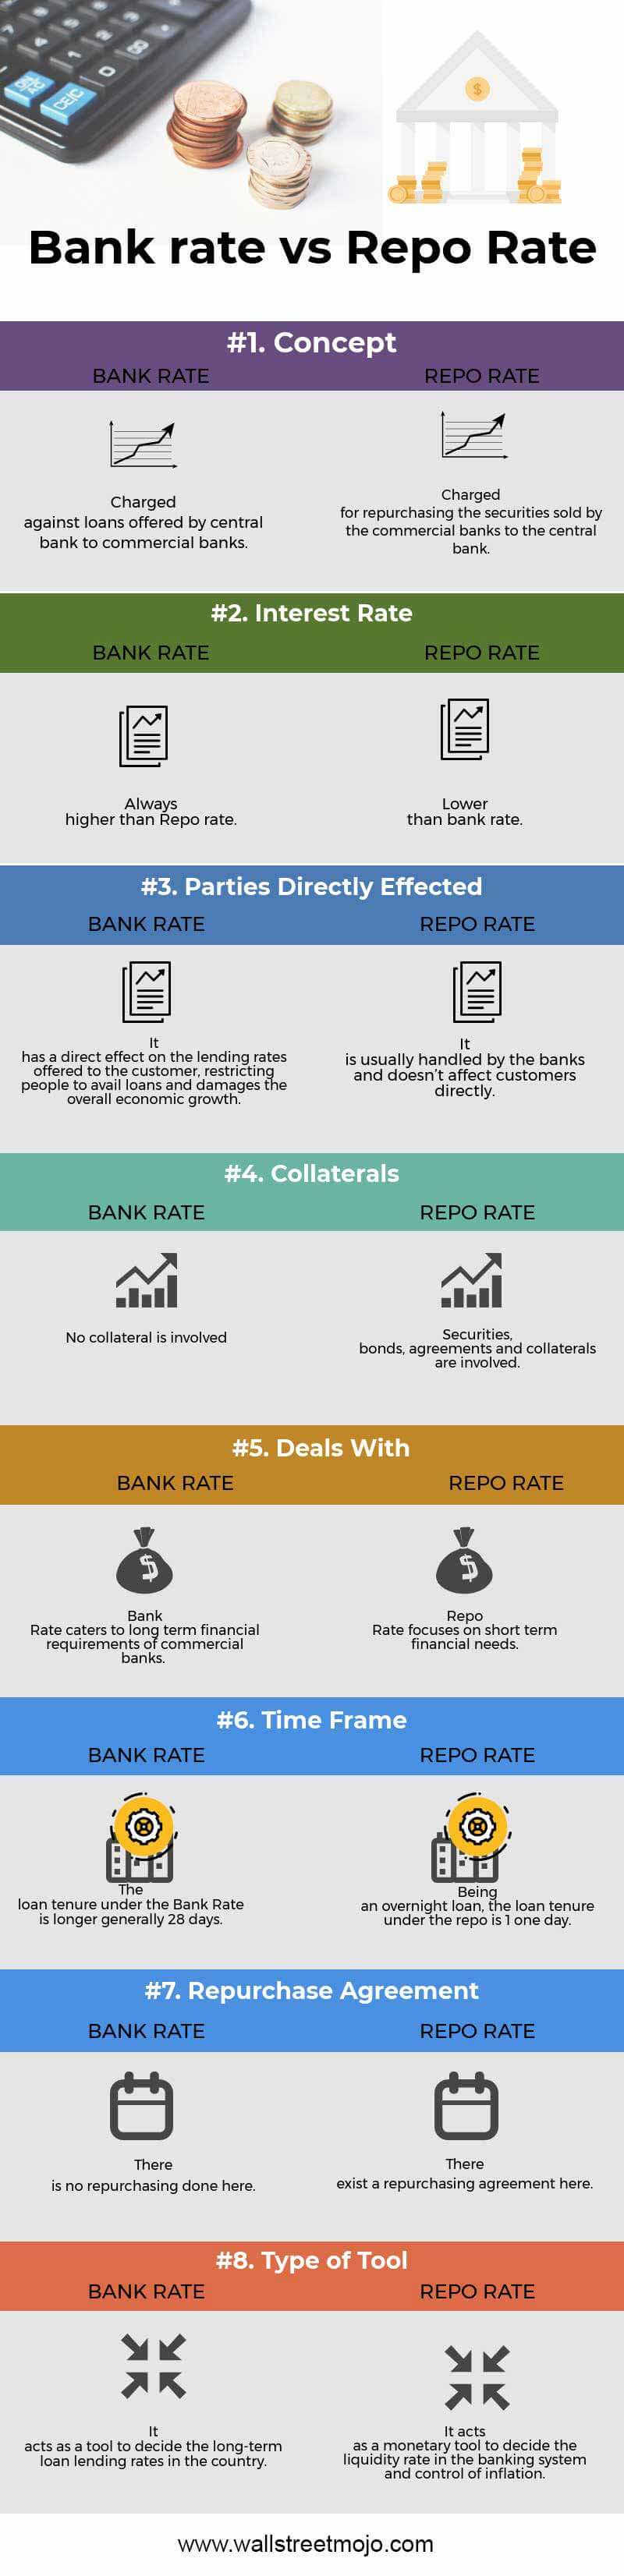 Bank-rate-vs-Repo-Rate